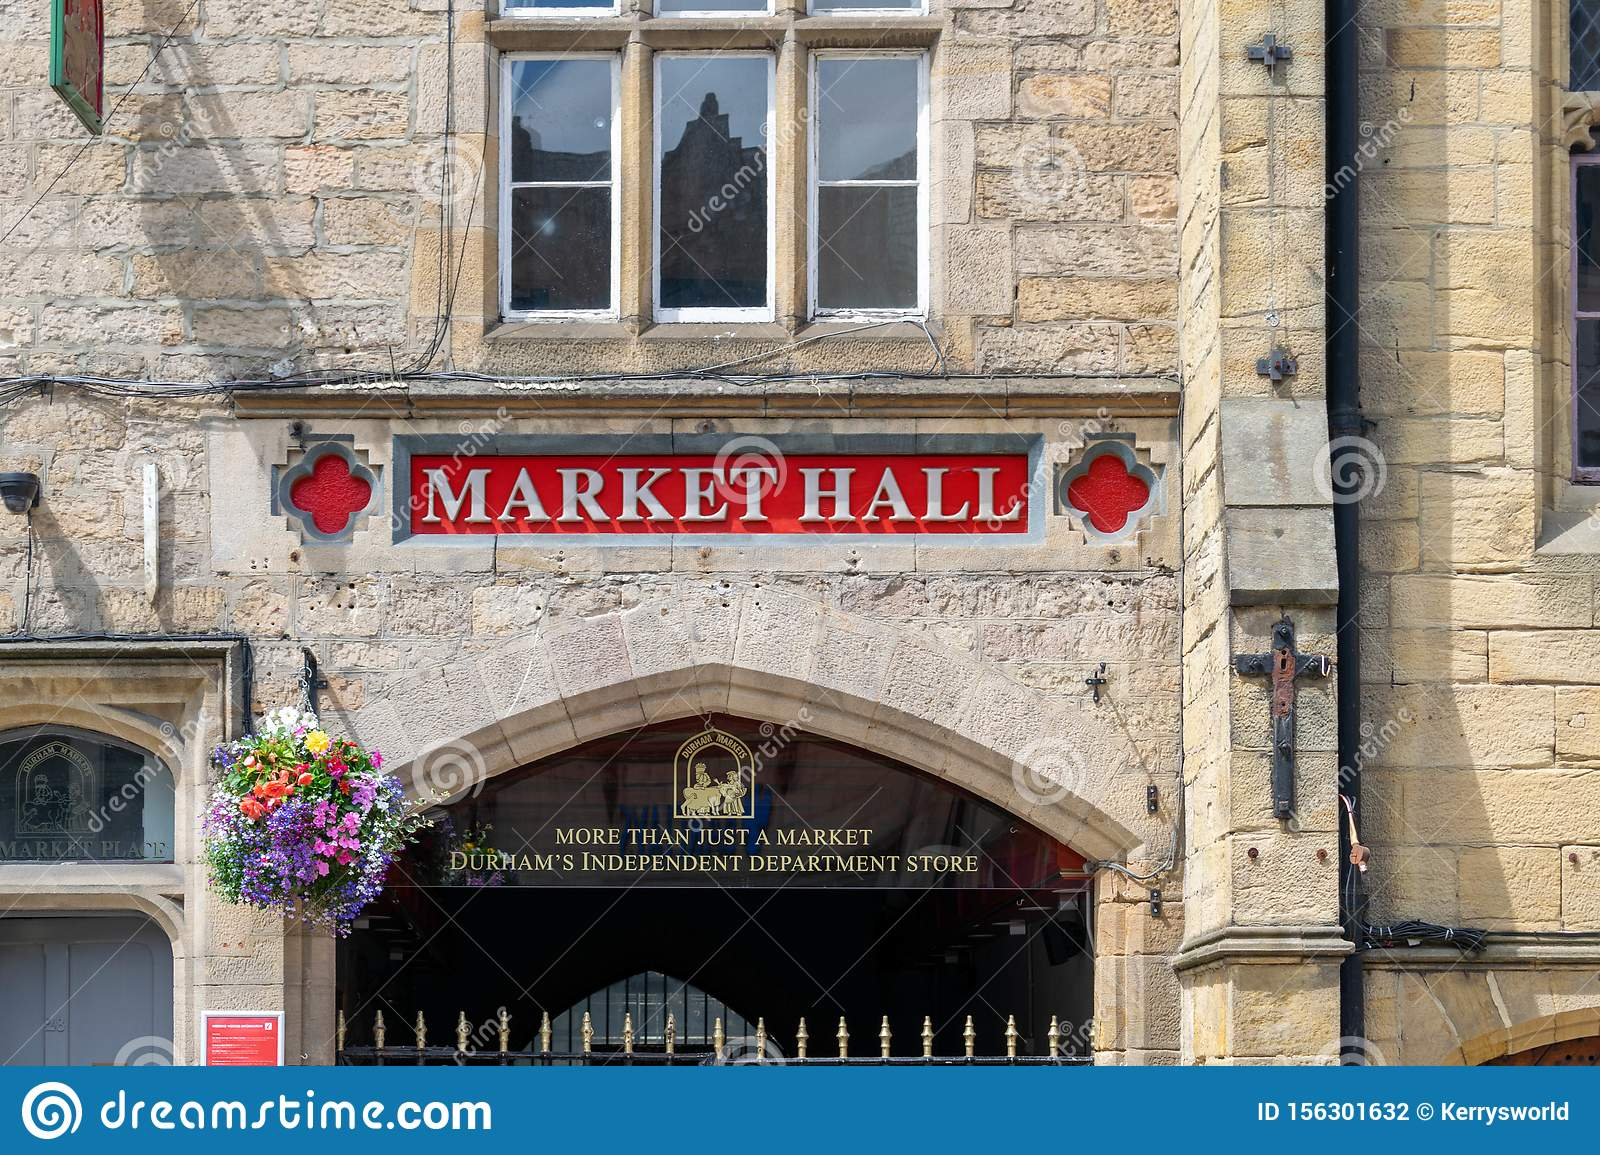 Durham`s Market Hall is the beating heart of Durham, with over 50 independent traders offering a wide range of foods and services